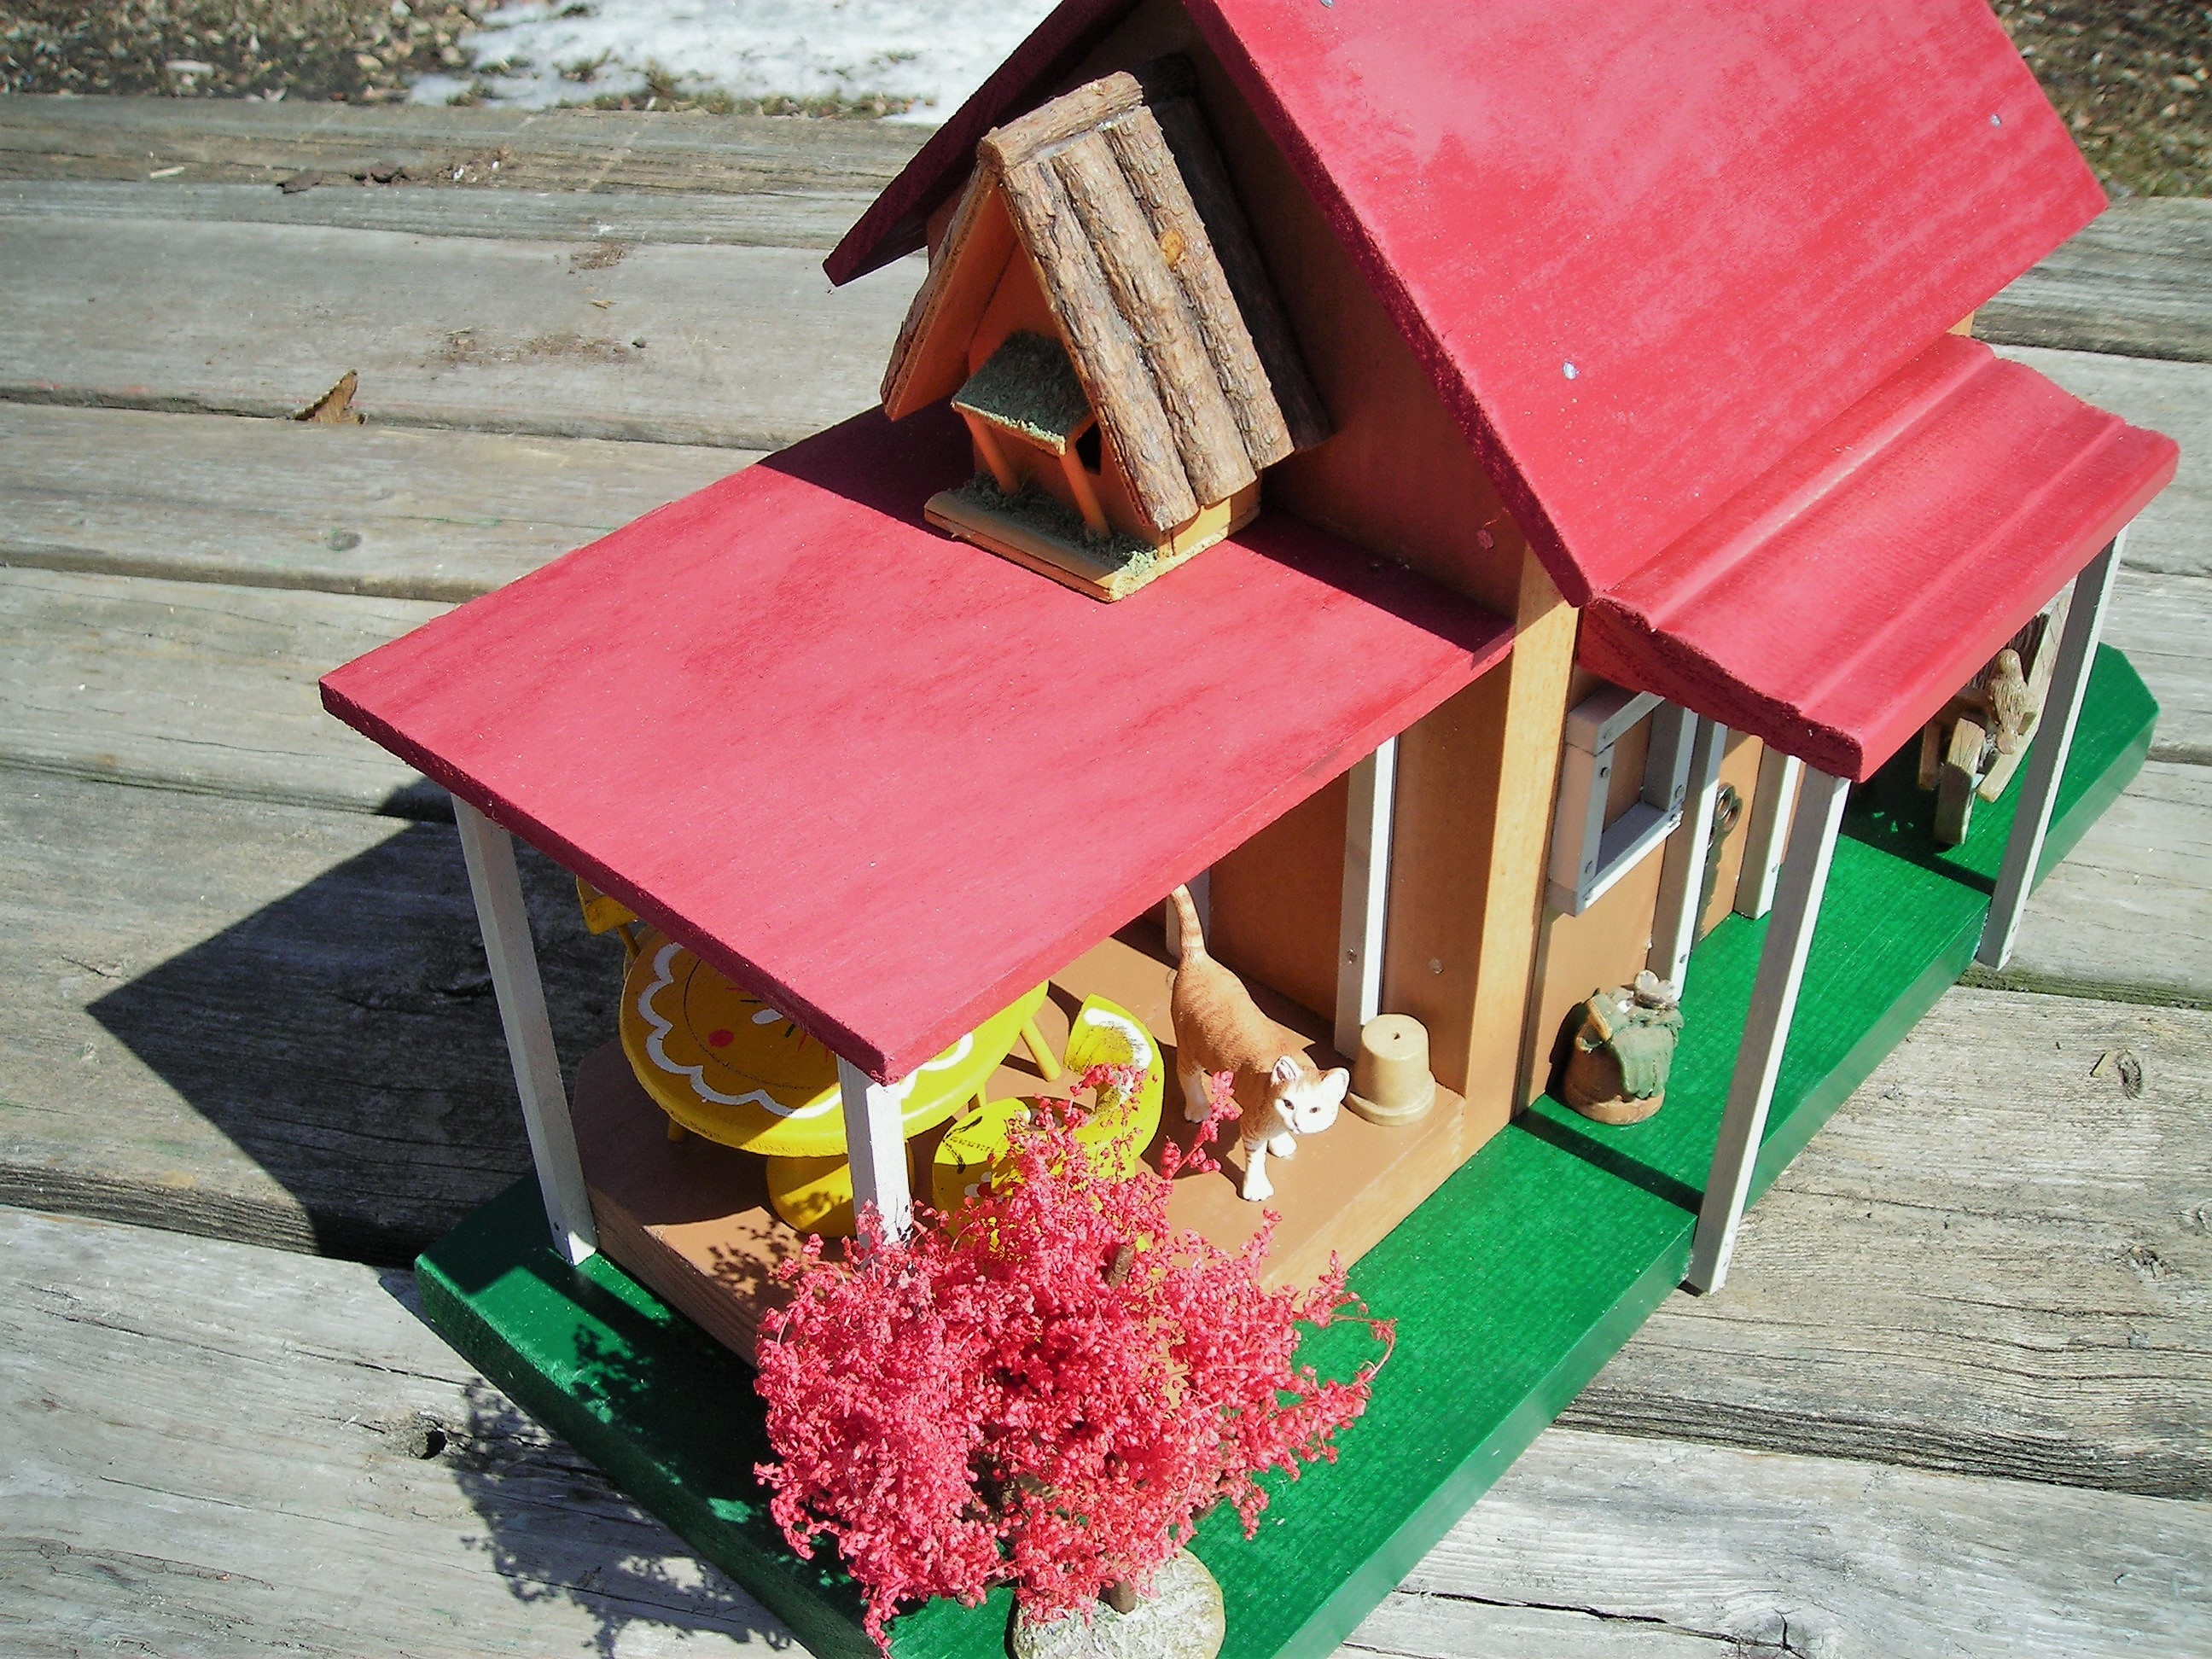 Rons Rustic Birdhouses Red Roof Cottage top